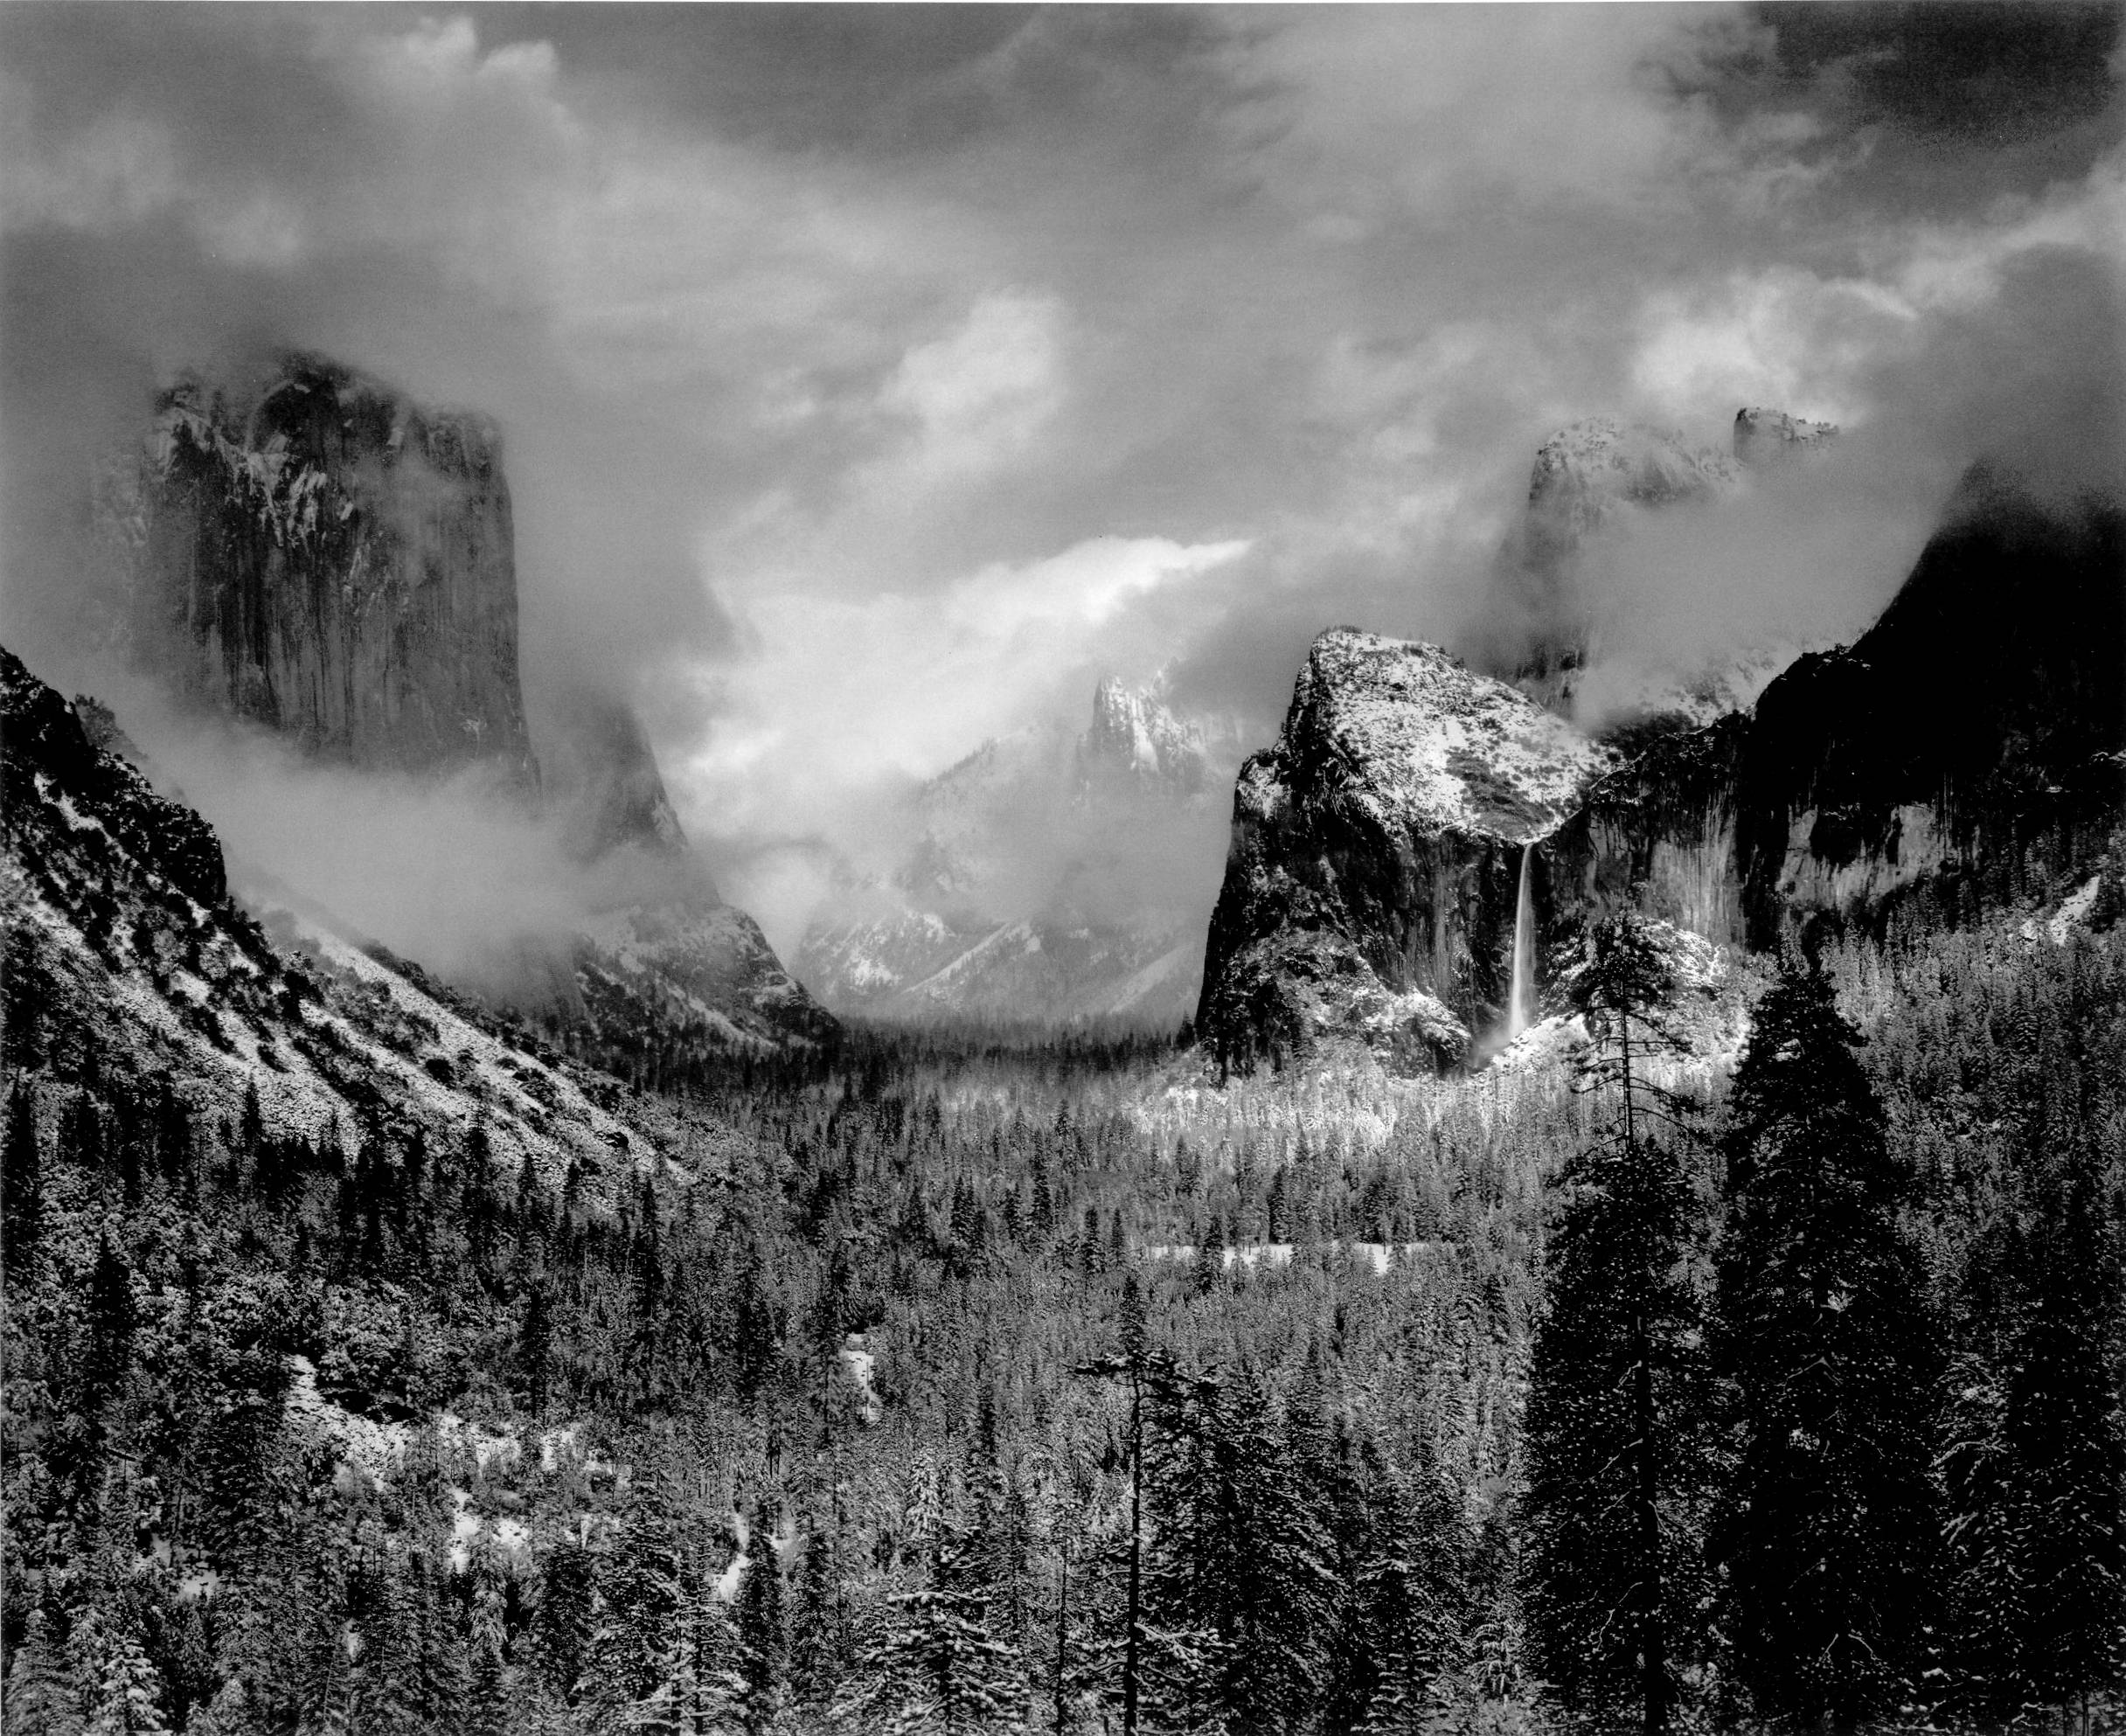 Clearing Winter Storm, Yosemite, by Ansel Adams, 1938